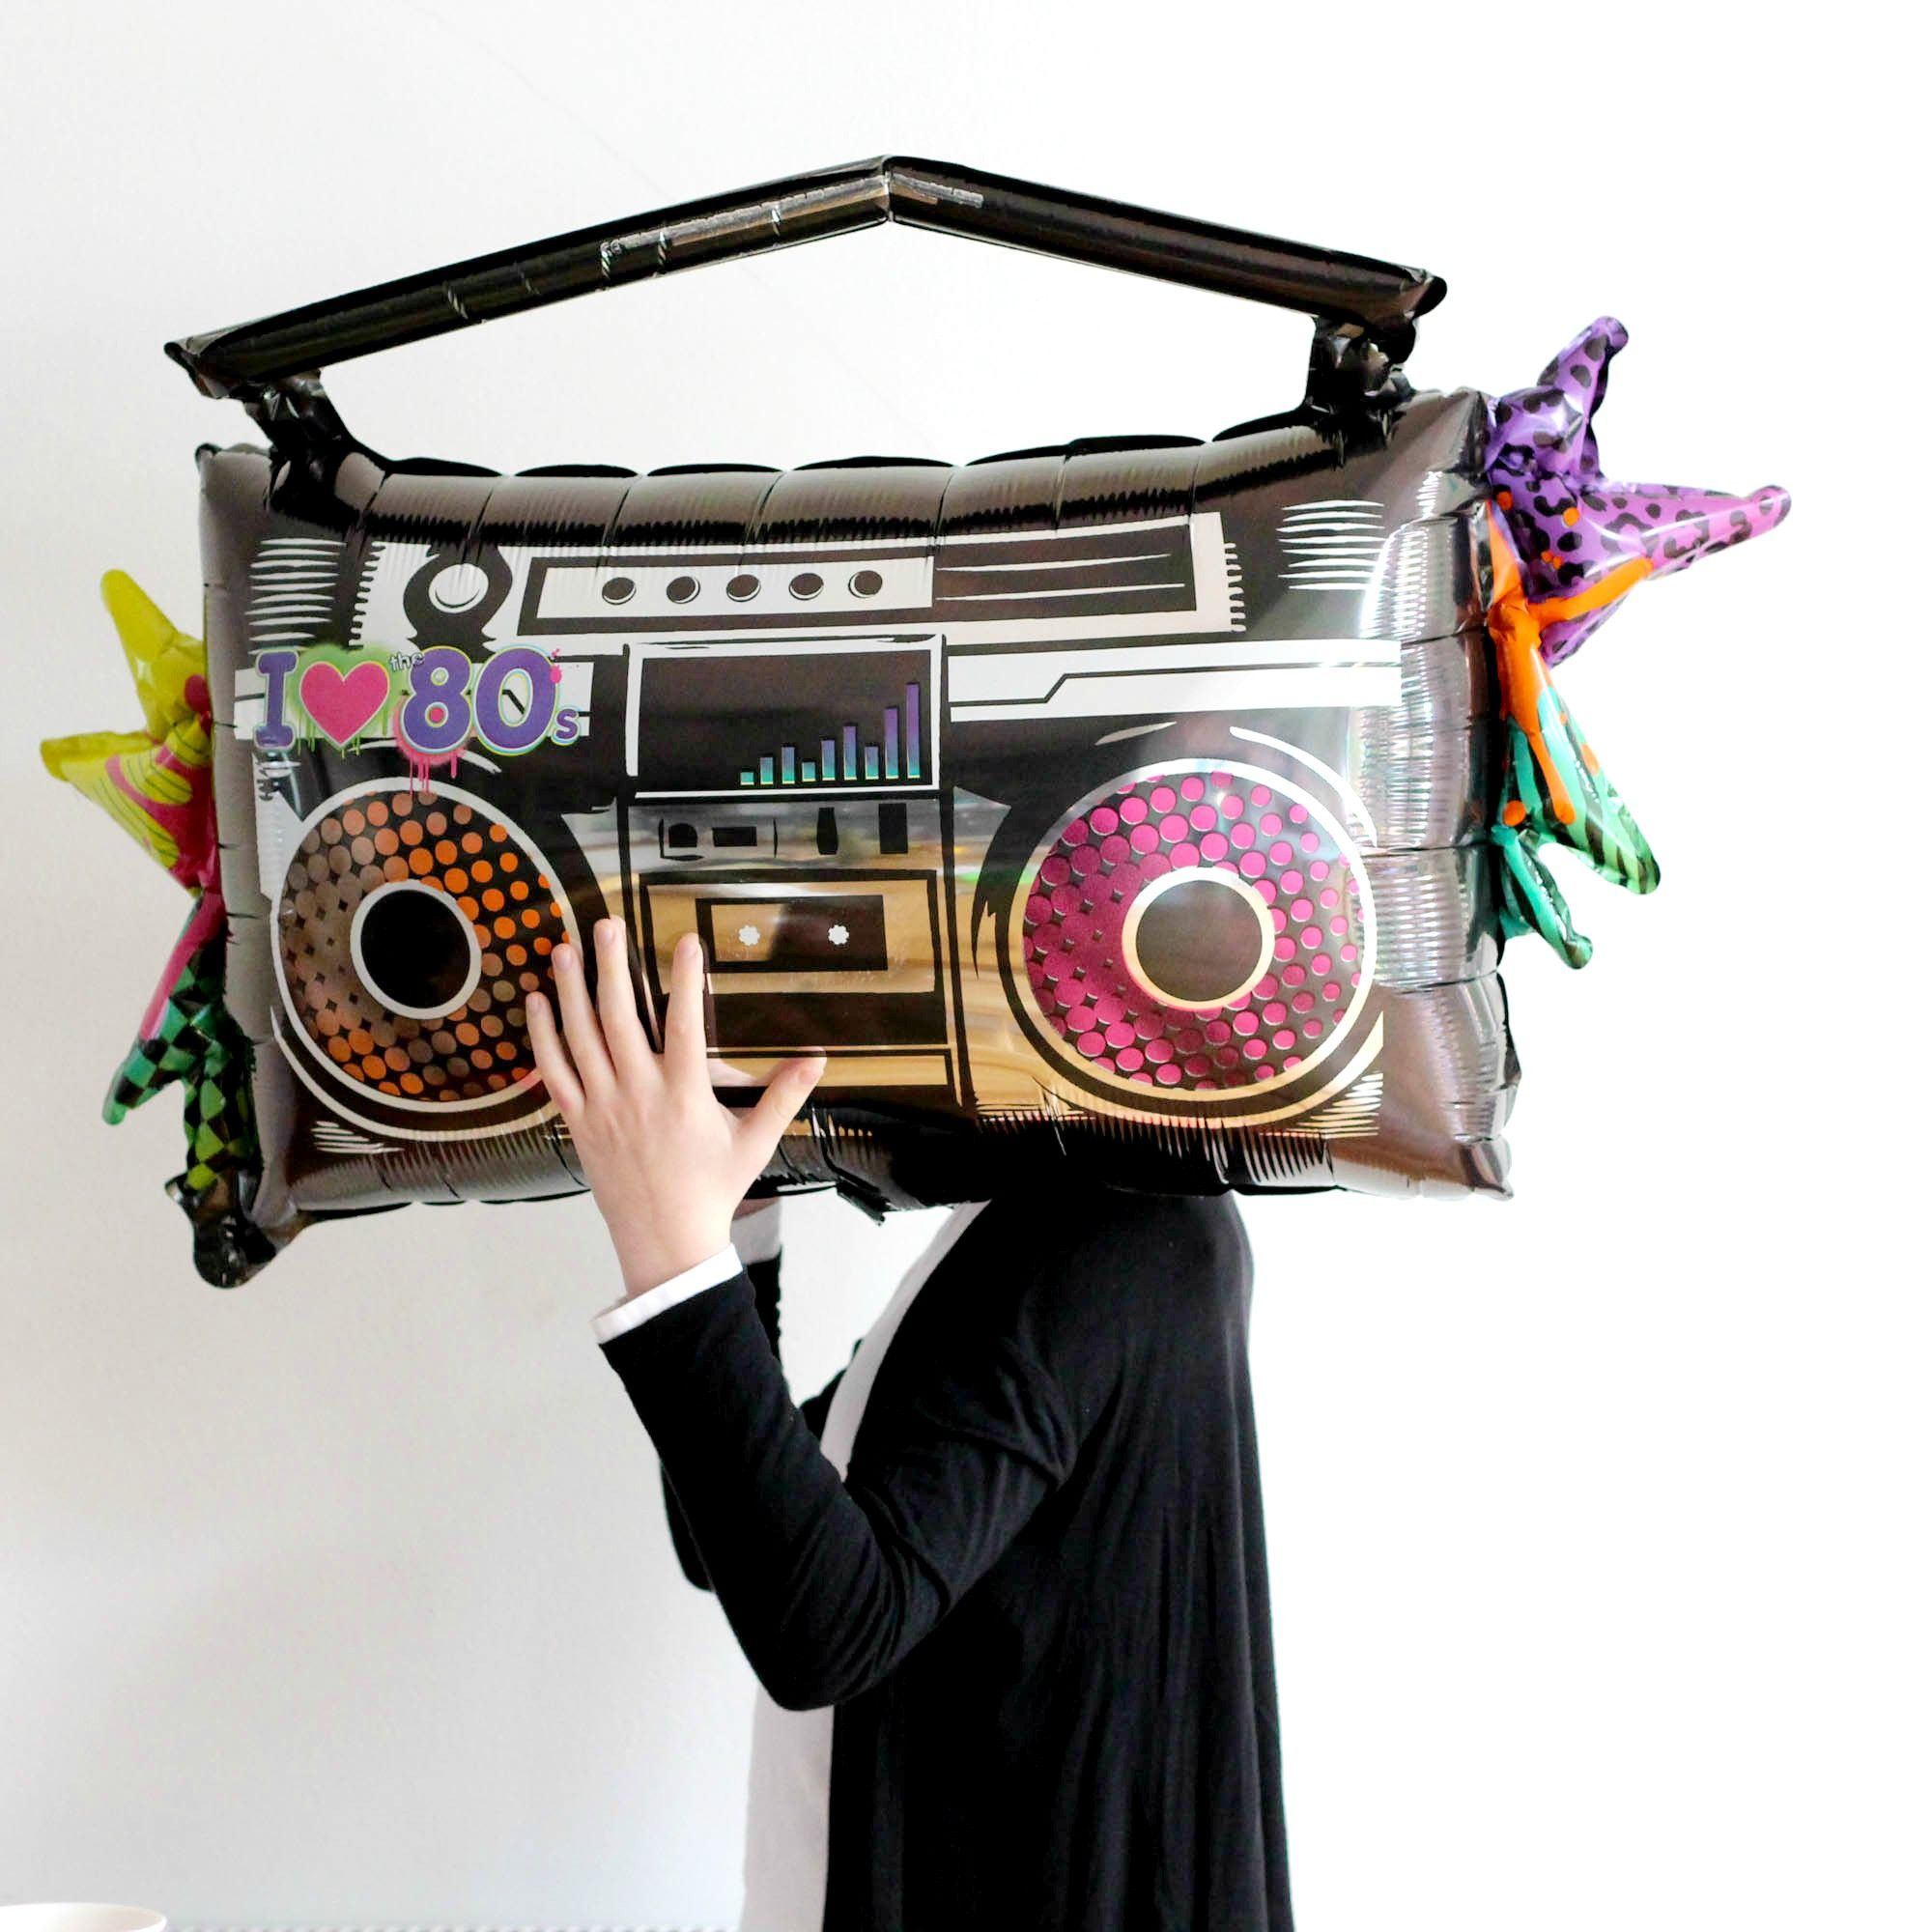 Giant 80's Boombox Balloon from Pretty Little Party Shop - Stylish Party